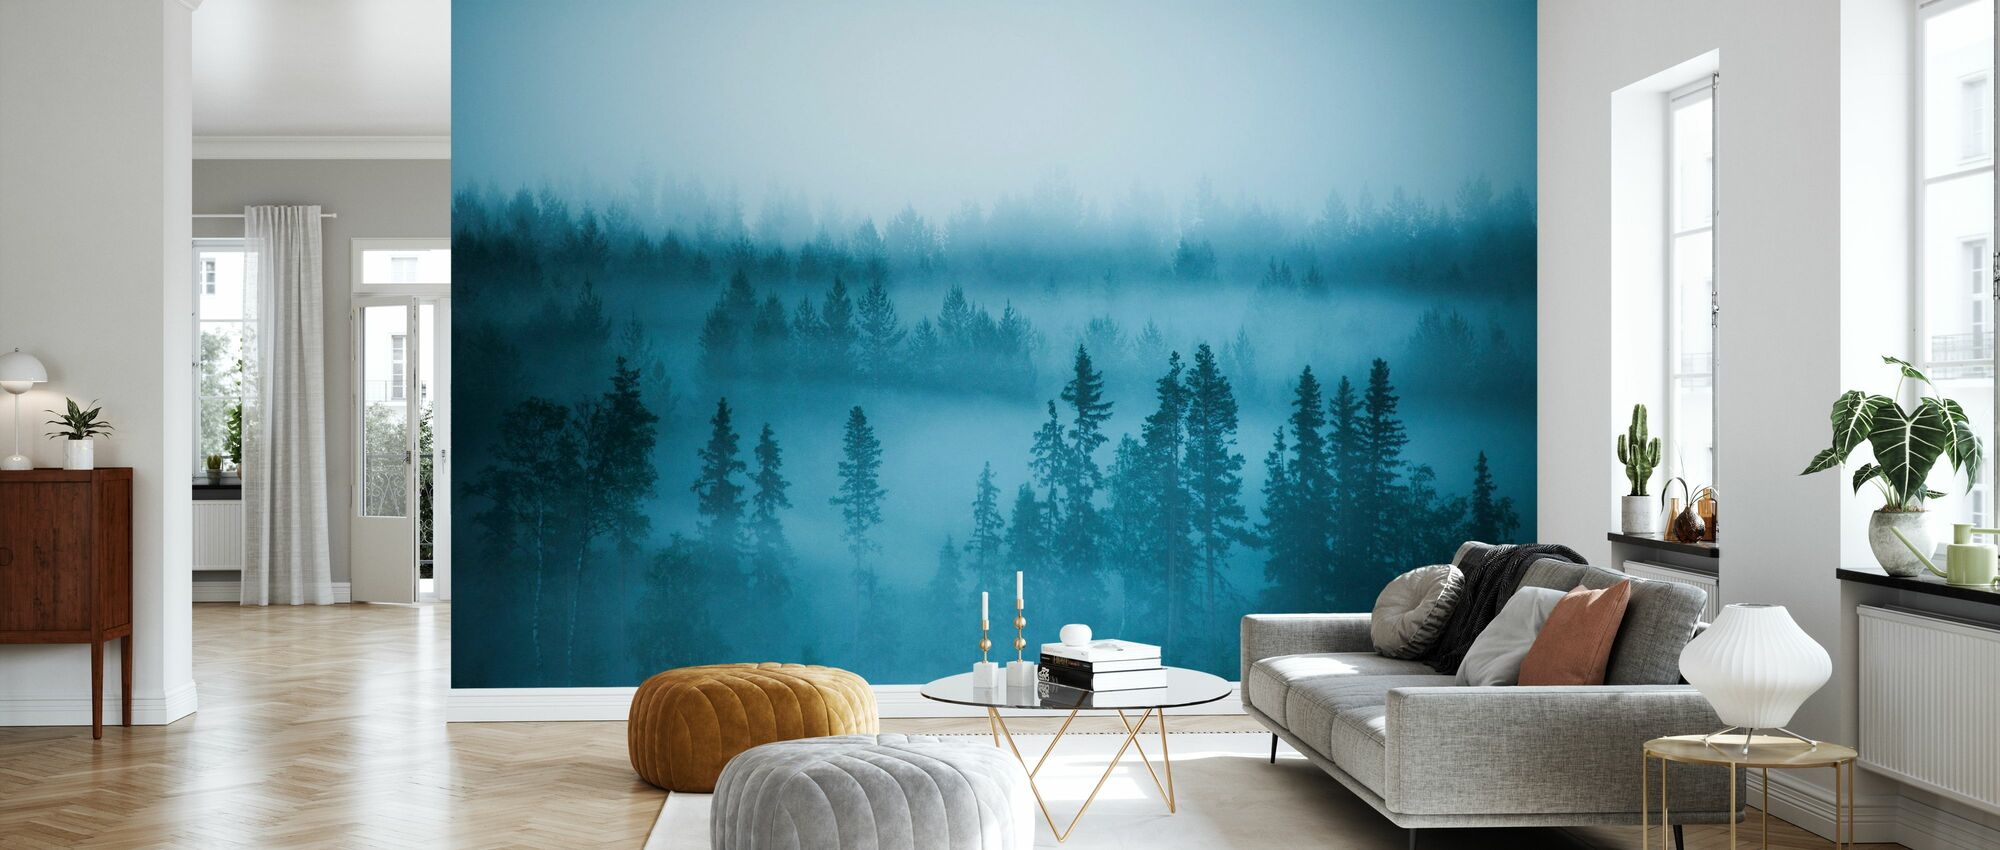 Into the Wild - Wallpaper - Living Room